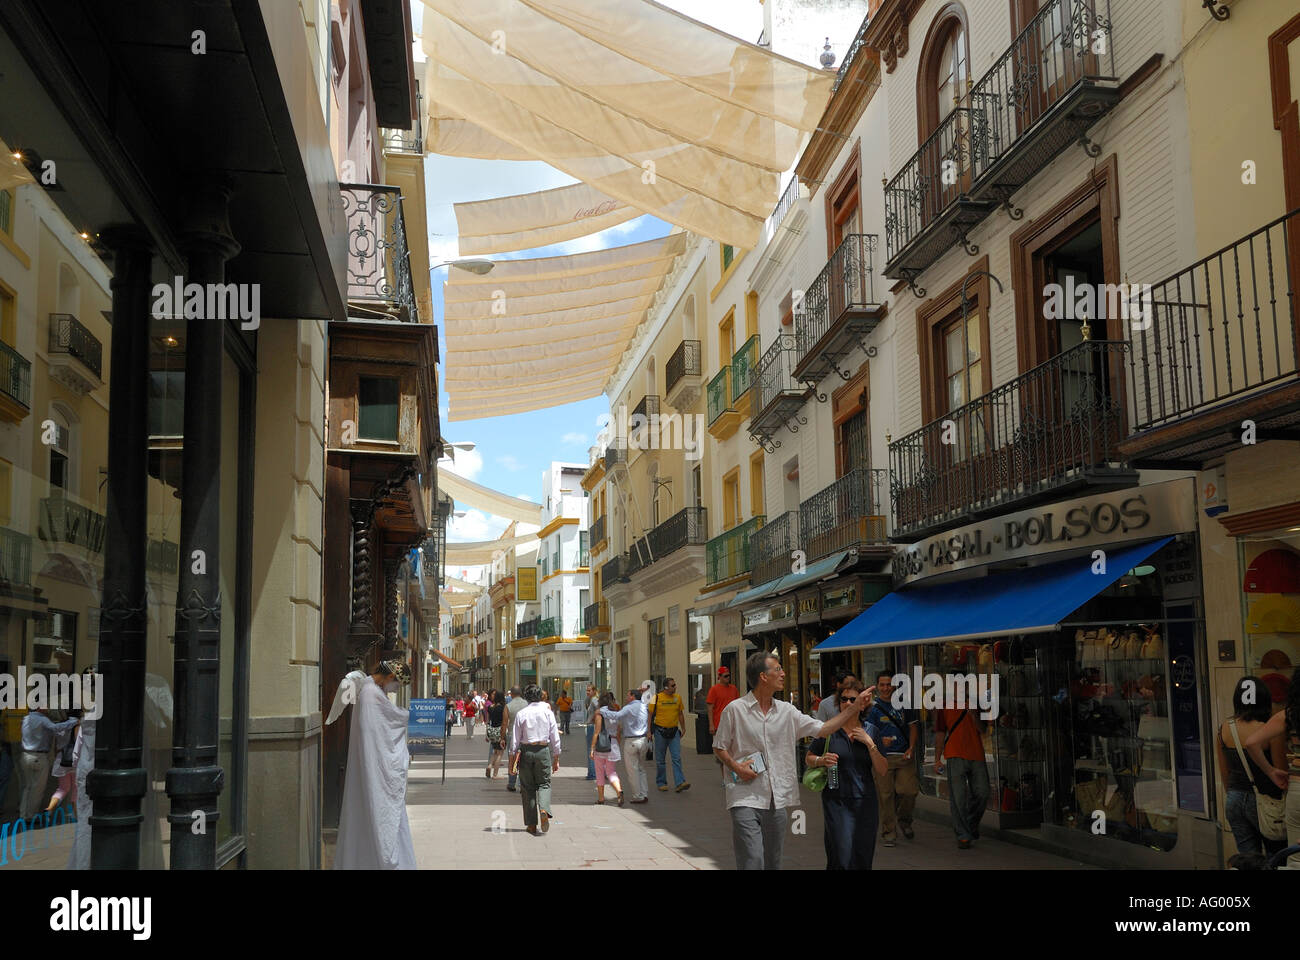 Sevilla Winkelen Covered Shopping Street In Seville Spain Stock Photo